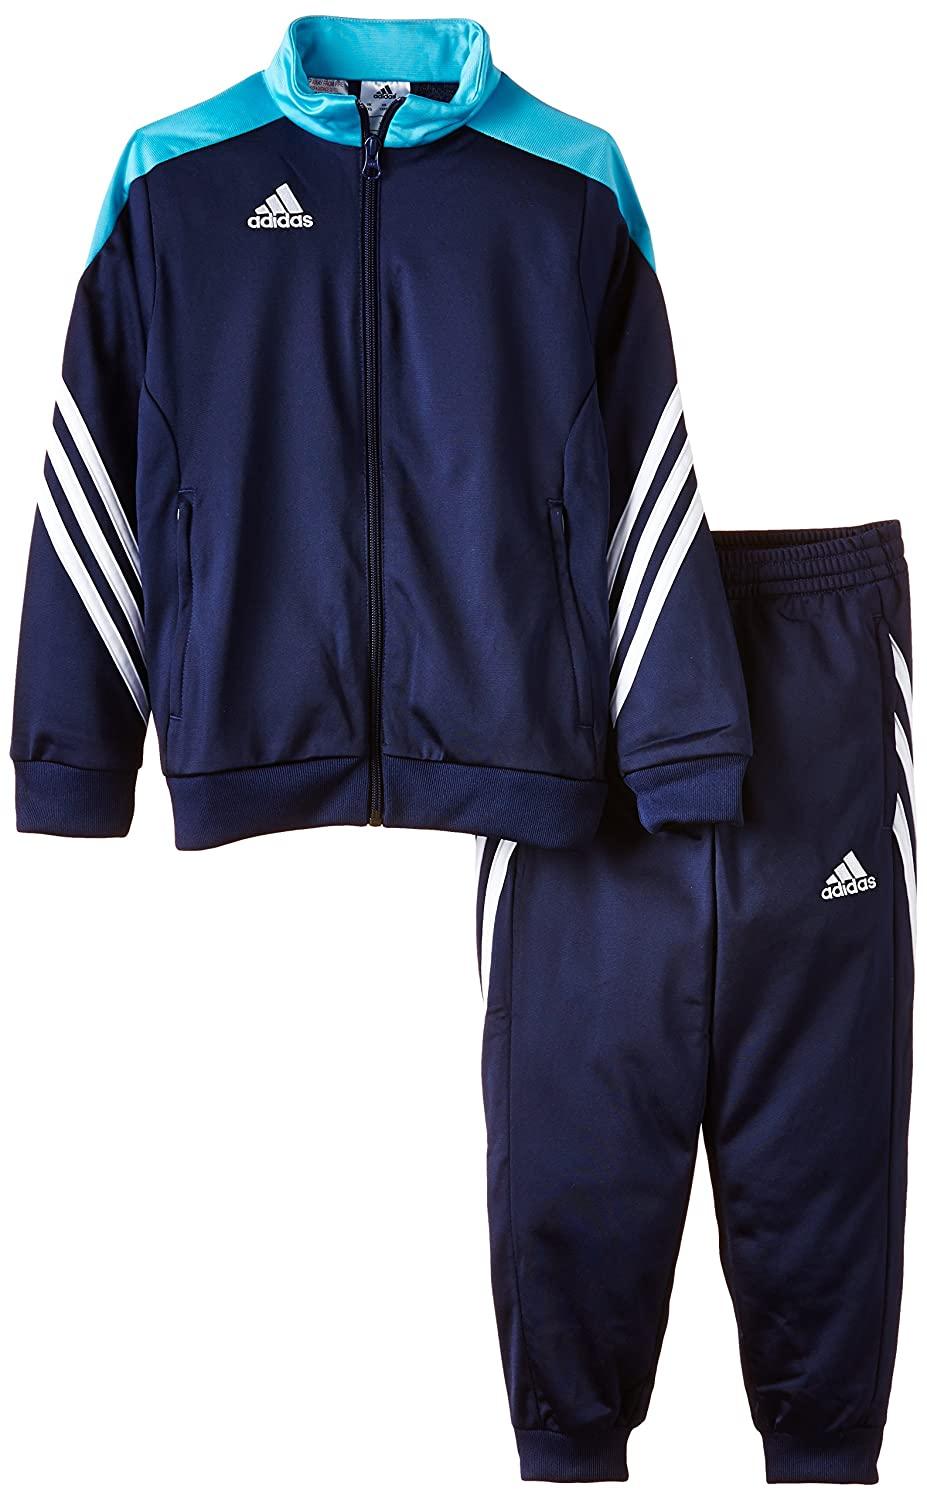 survetement 14 ans adidas